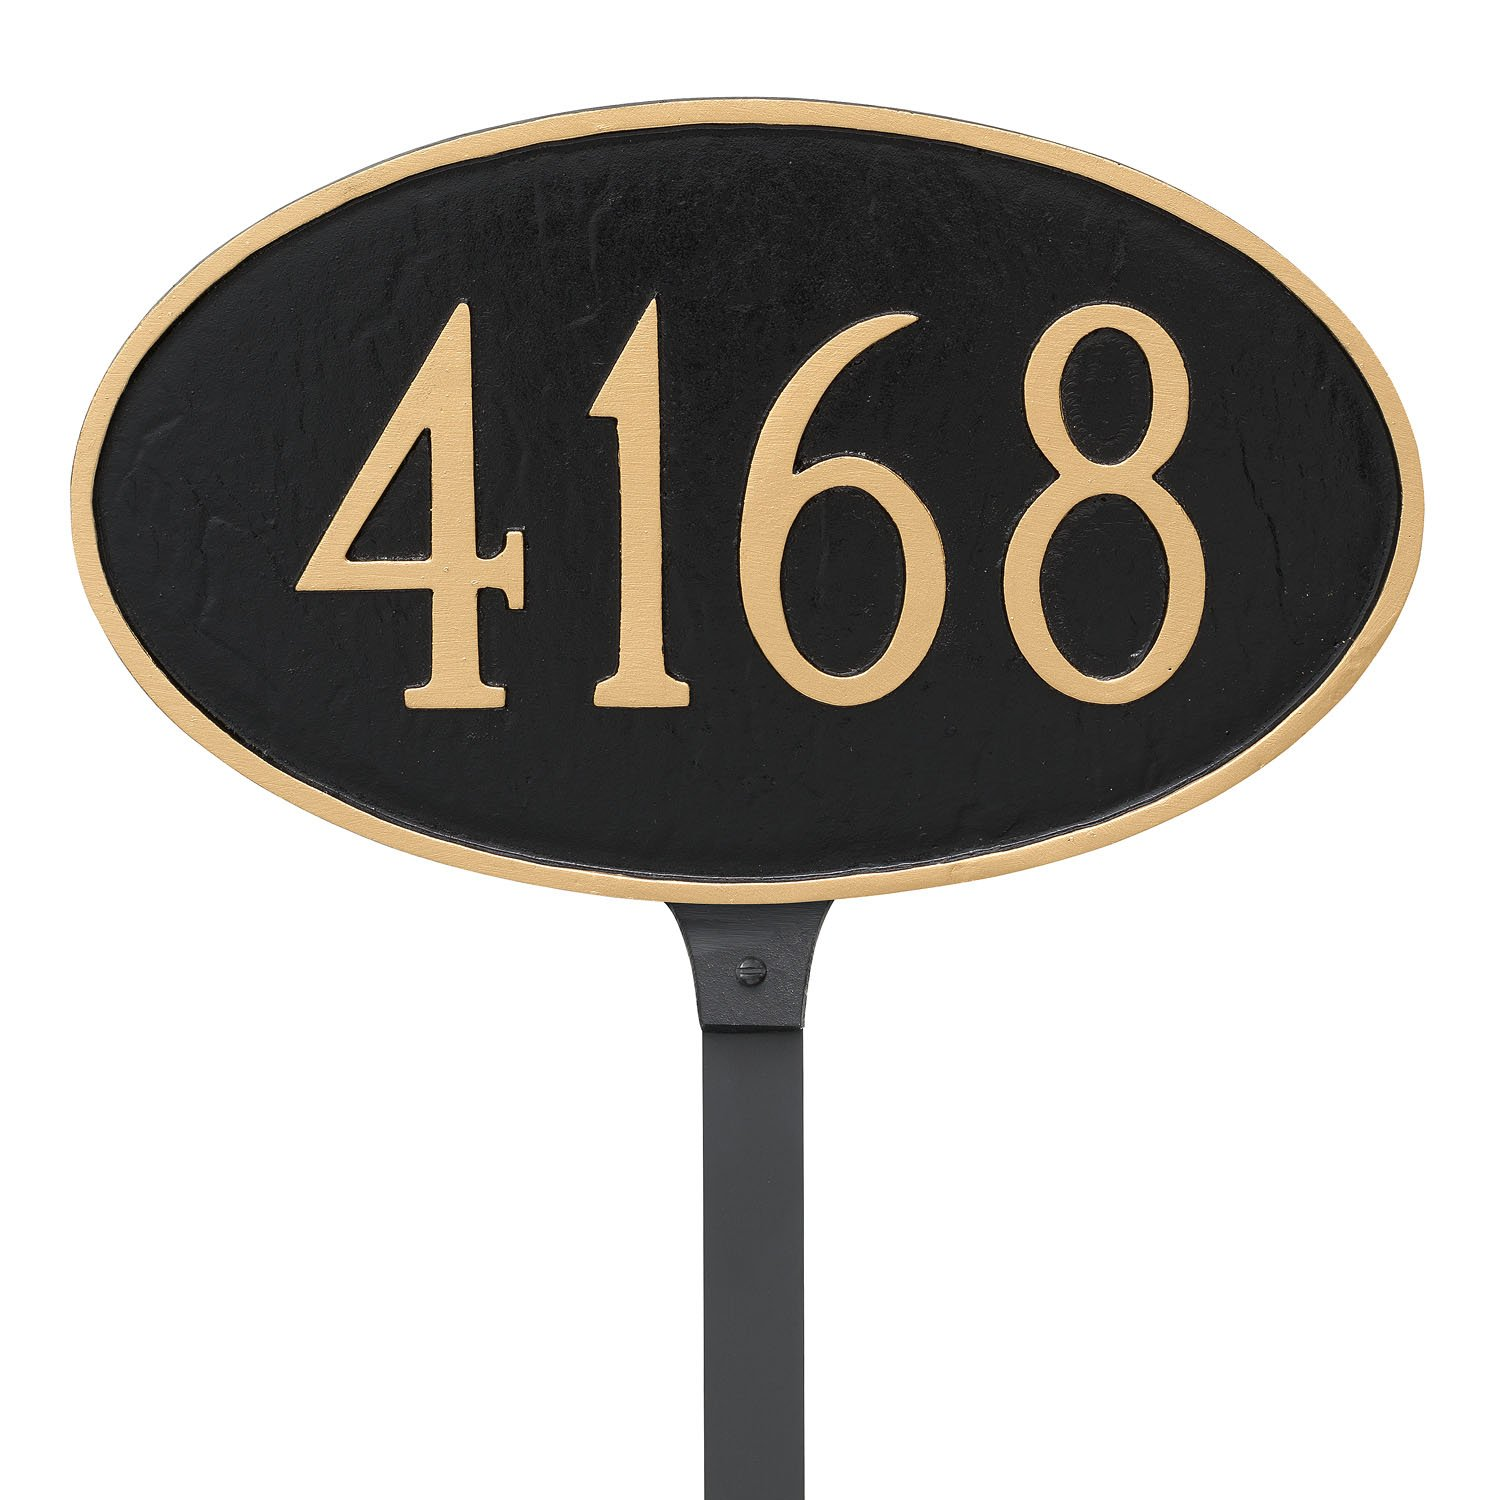 Montague Metal 8.5 x 13.75 Classic Oval Address Sign Plaque with Lawn Stake, Standard, Black/Gold PCS-0004S1-L-BG